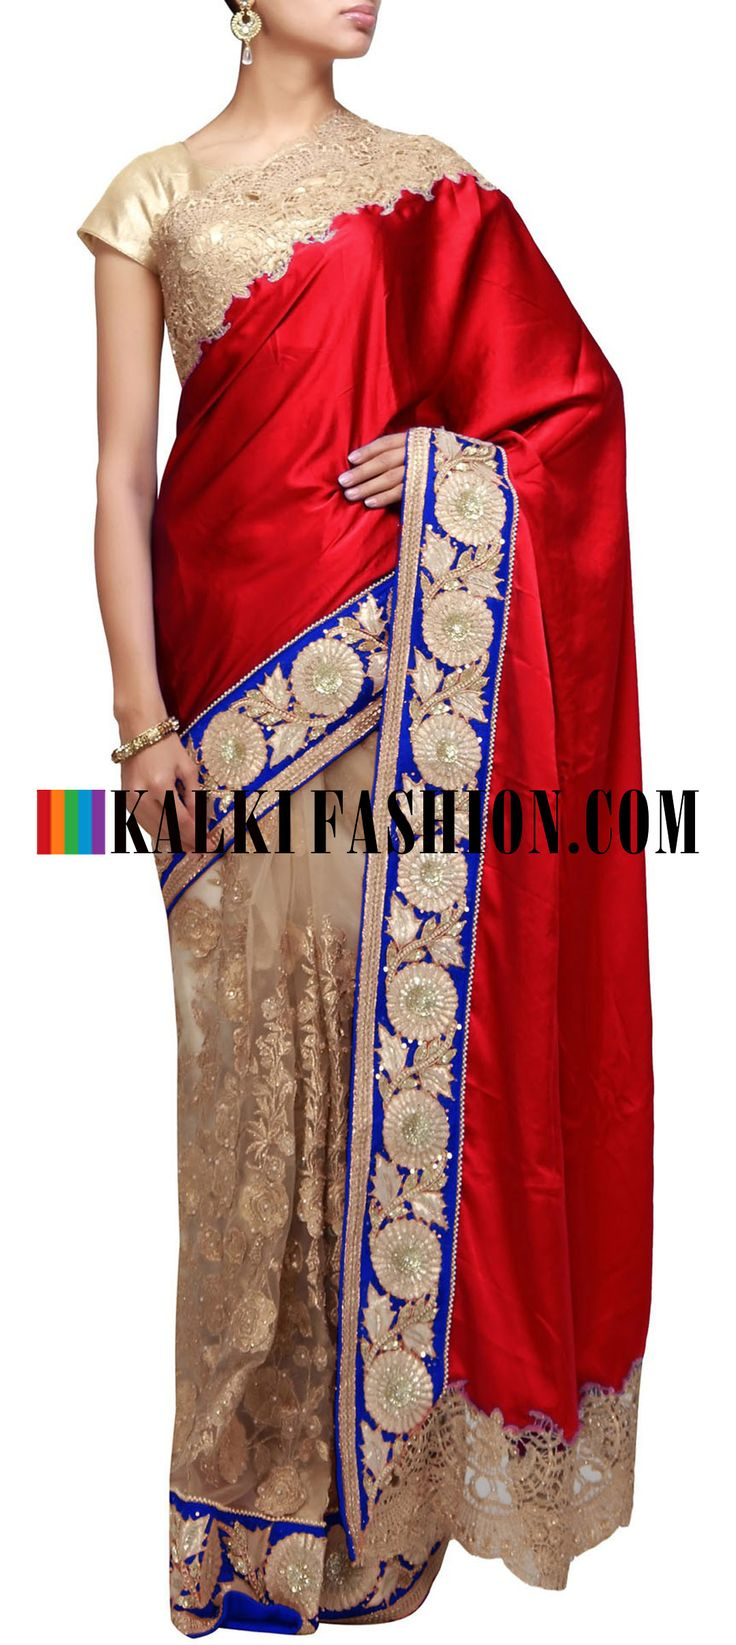 Get this beautiful golden outfit here: http://www.kalkifashion.com/half-and-half-saree-featuring-in-red-and-beige-highlighted-in-zari-cut-work-embroidery.html Free shipping worldwide. #50ShadesOfGold